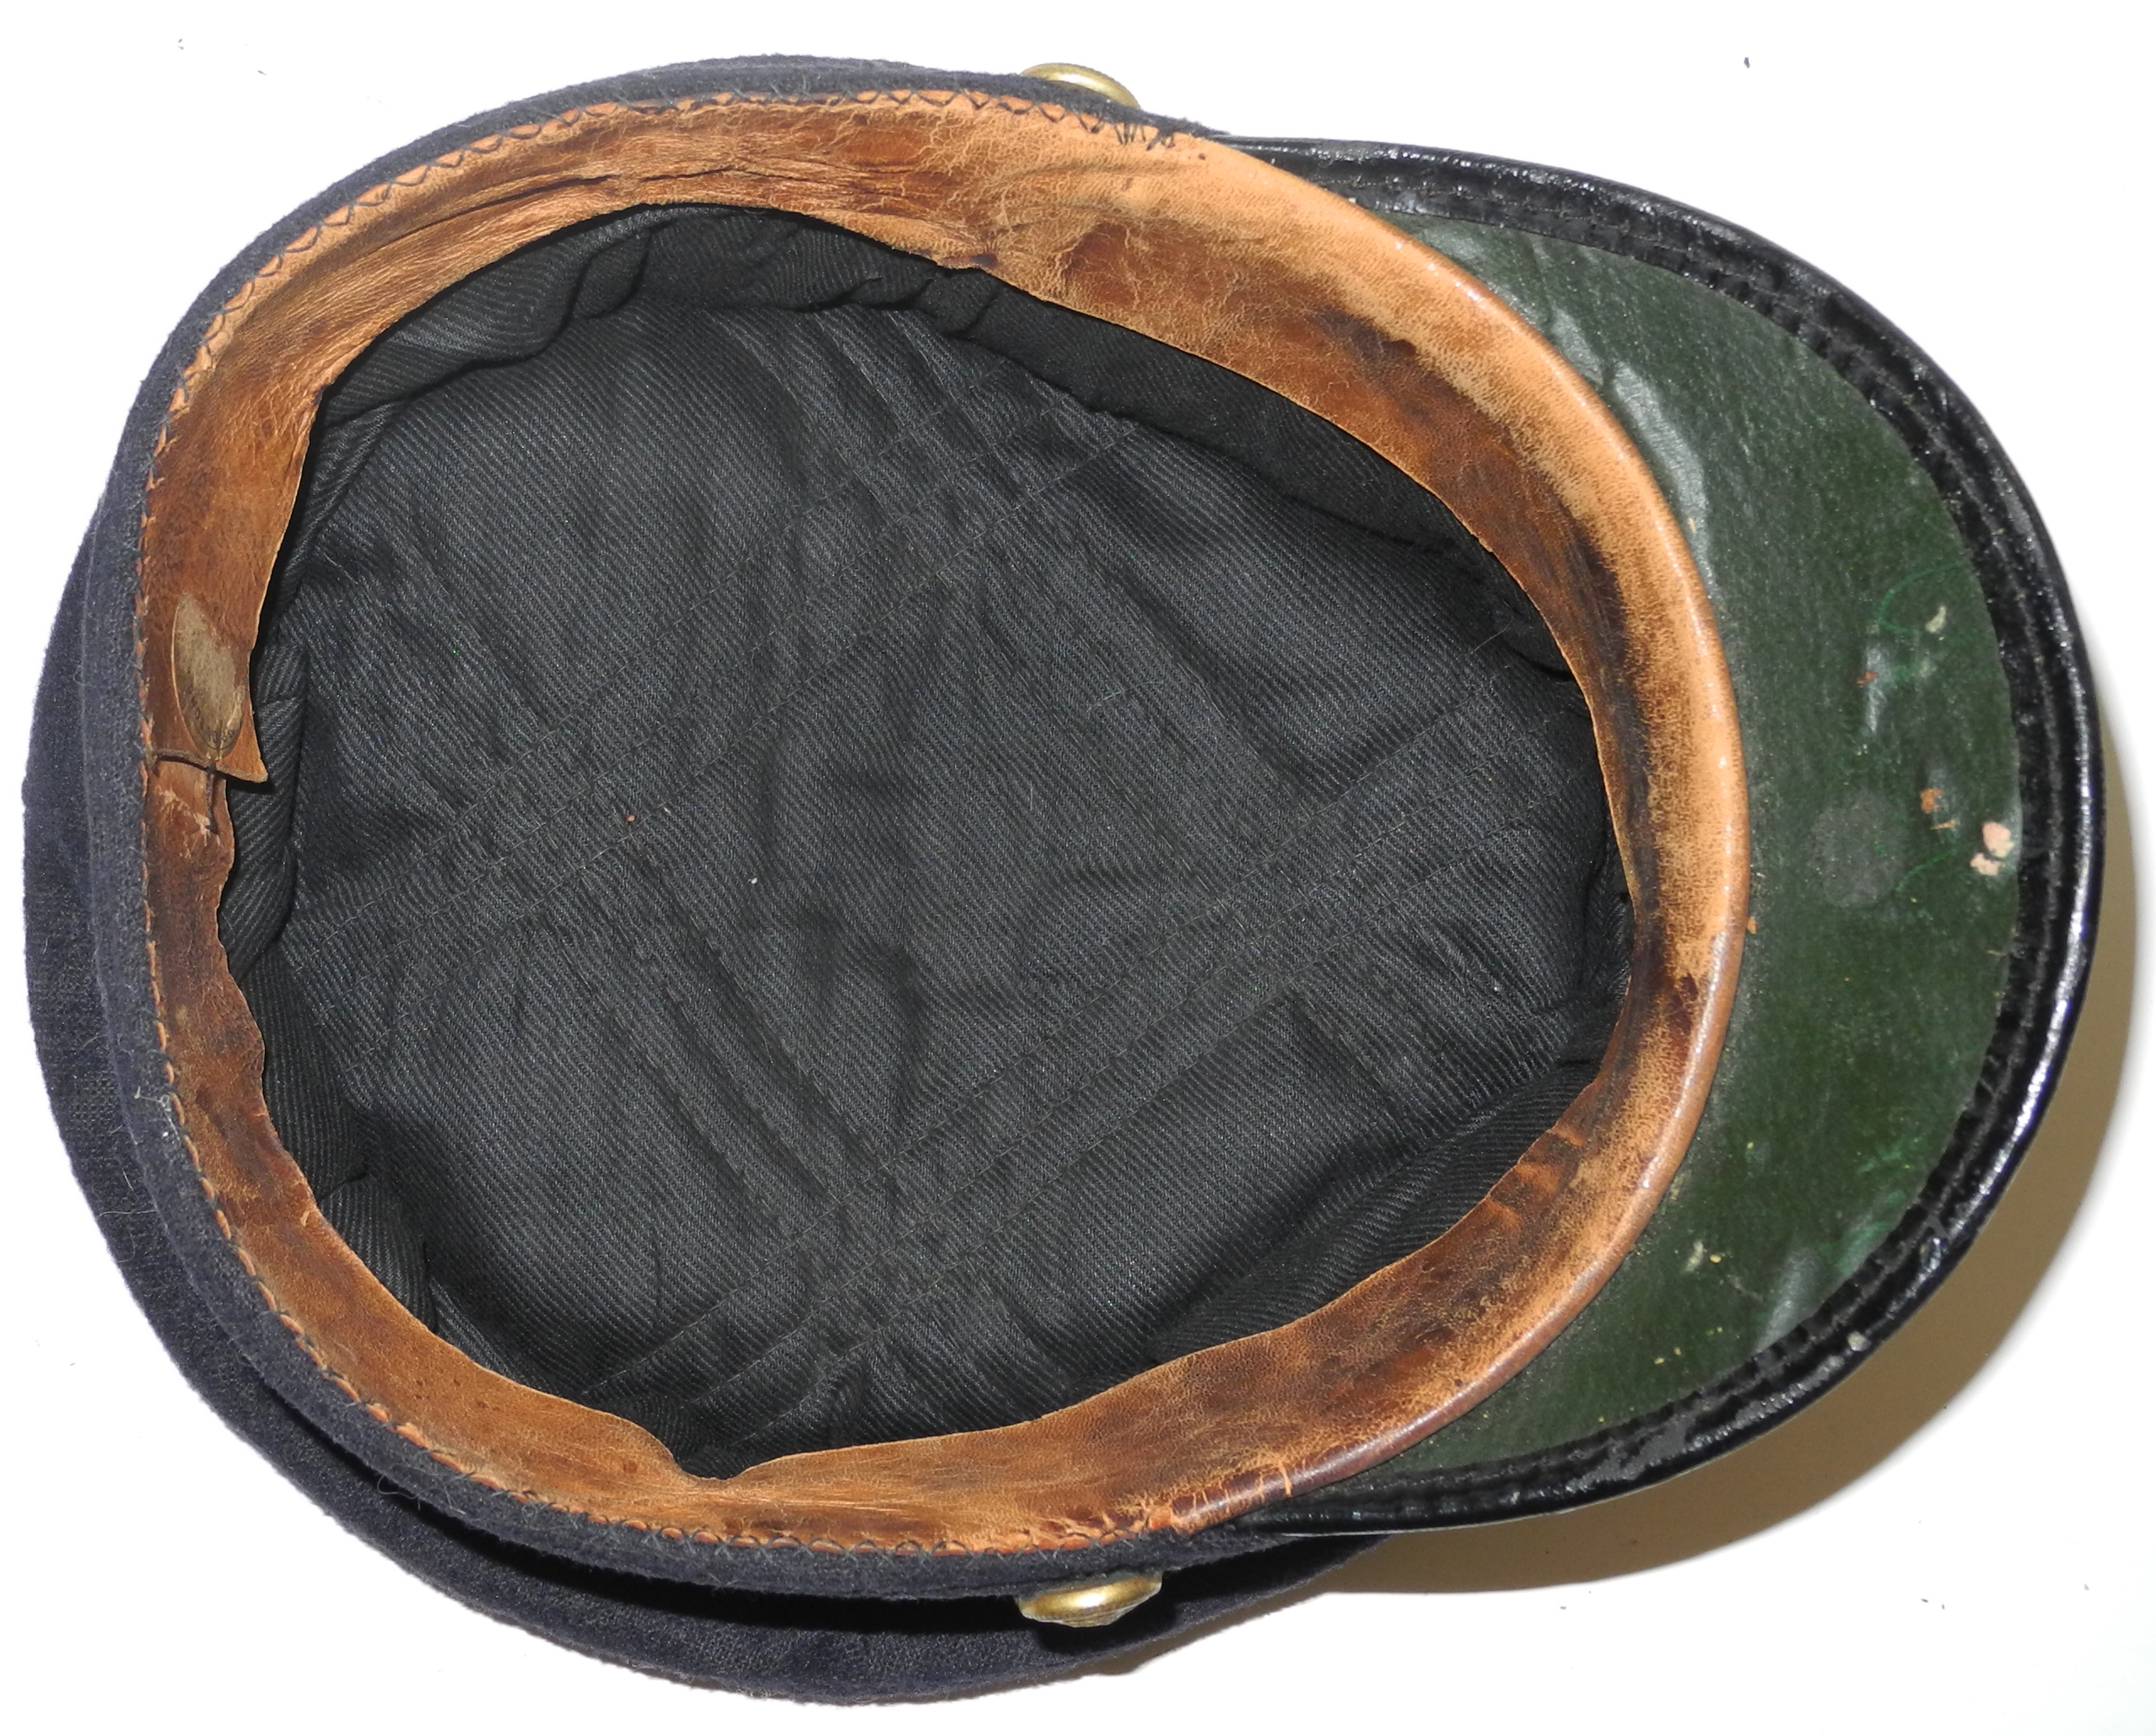 RNAS officer's cap with reproduction badgeDSCN8736